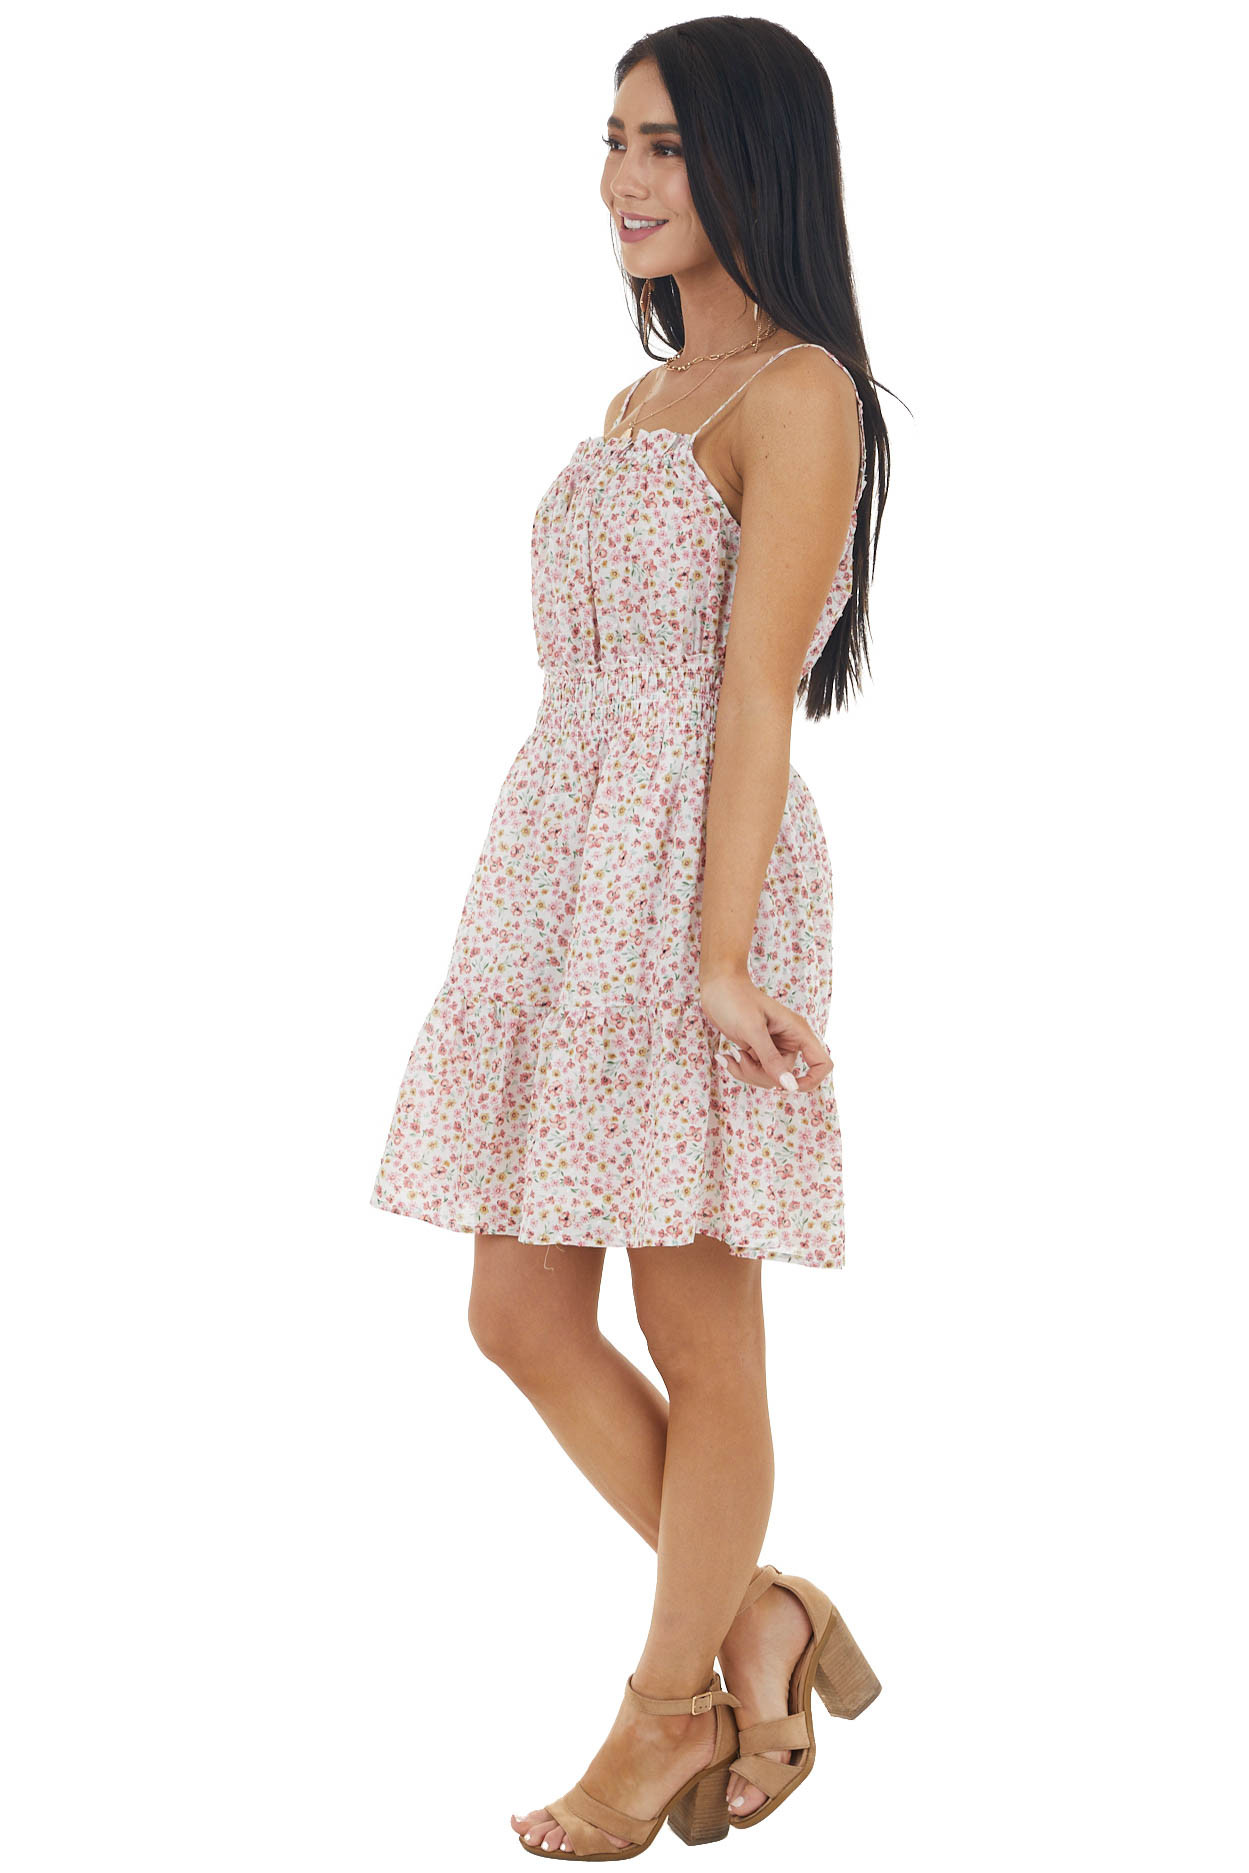 Pearl and Punch Floral Sleeveless Swiss Dot Short Dress